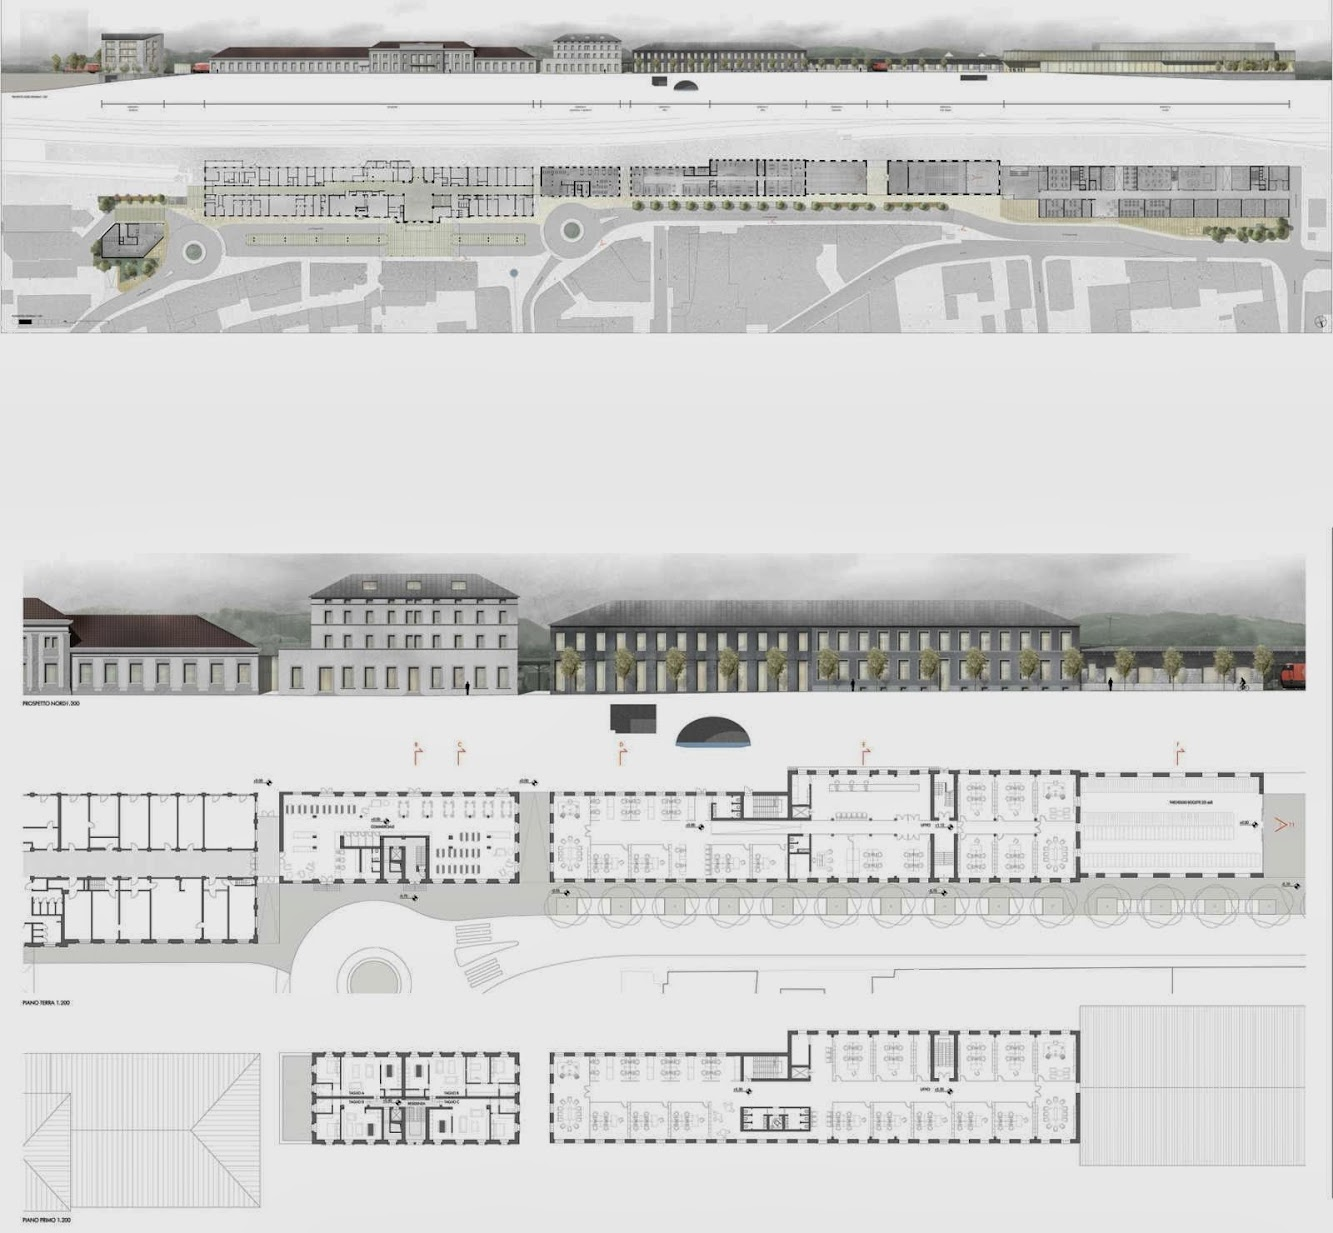 11-Antonio-Citterio-Patricia-Viel-and-C+S-Architects-Win-SAMS-STA-competition